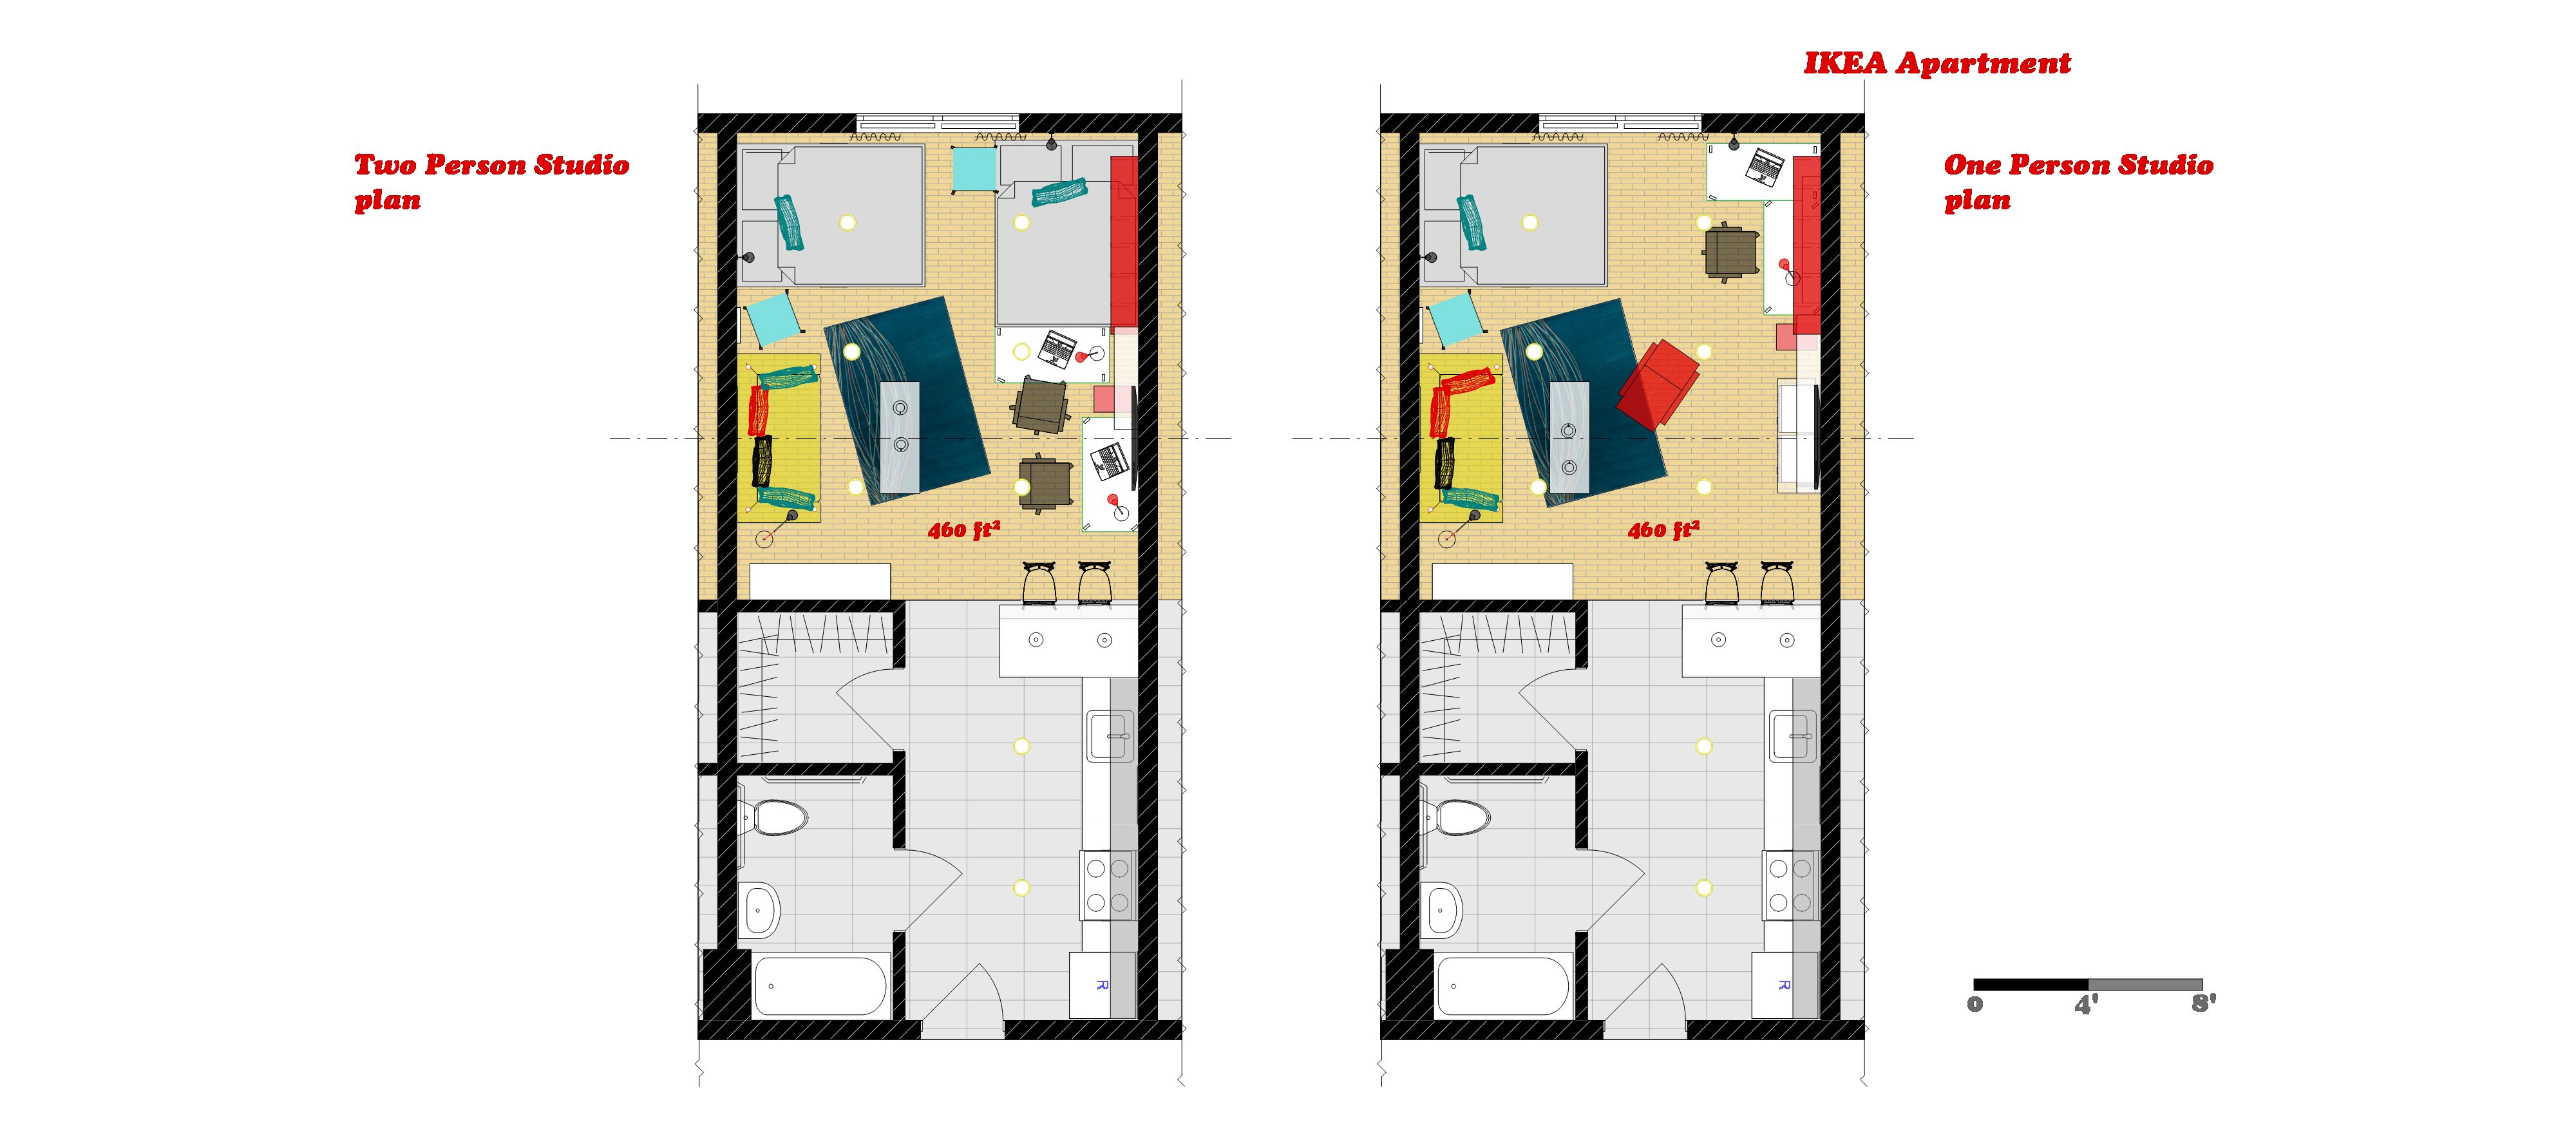 Ikea ideas studio apartment for Apartment designer program